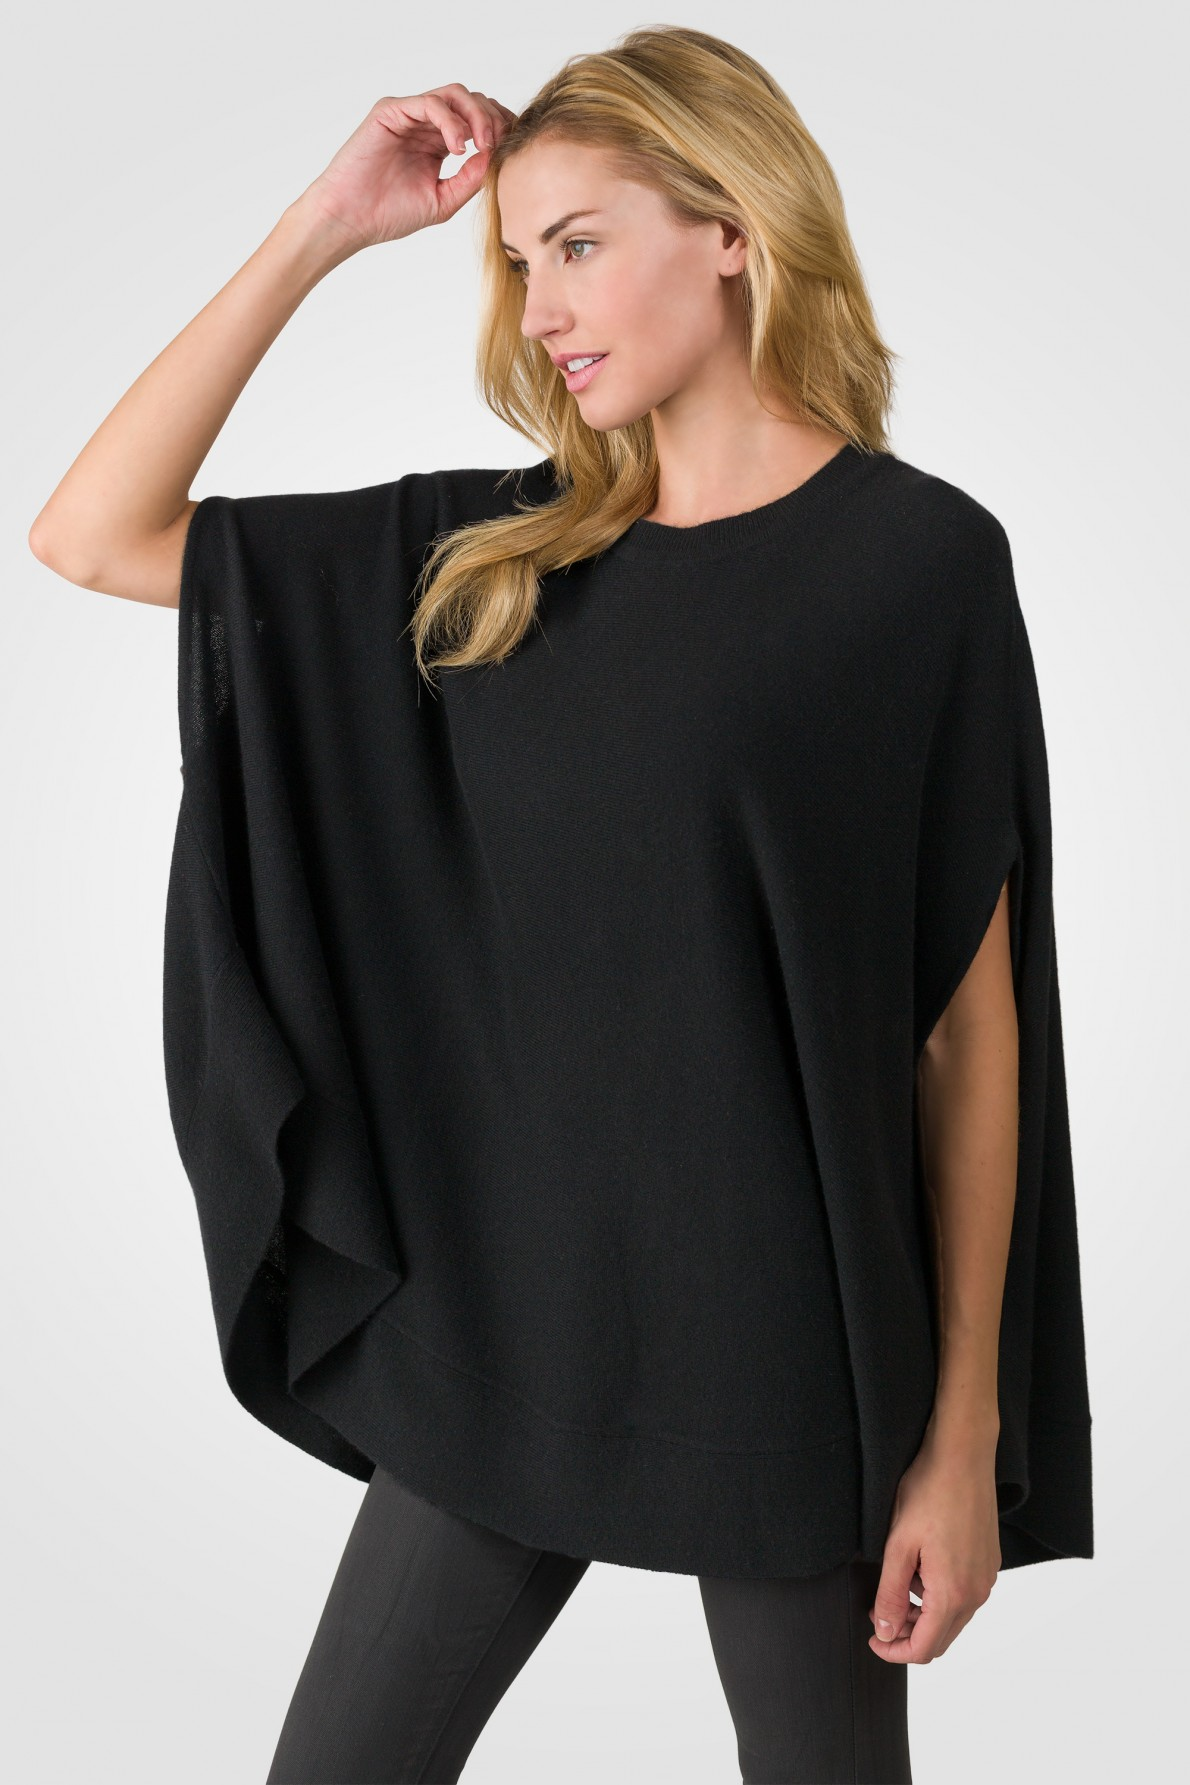 black cashmere oversized laid-back poncho sweater left side view fkphmvg